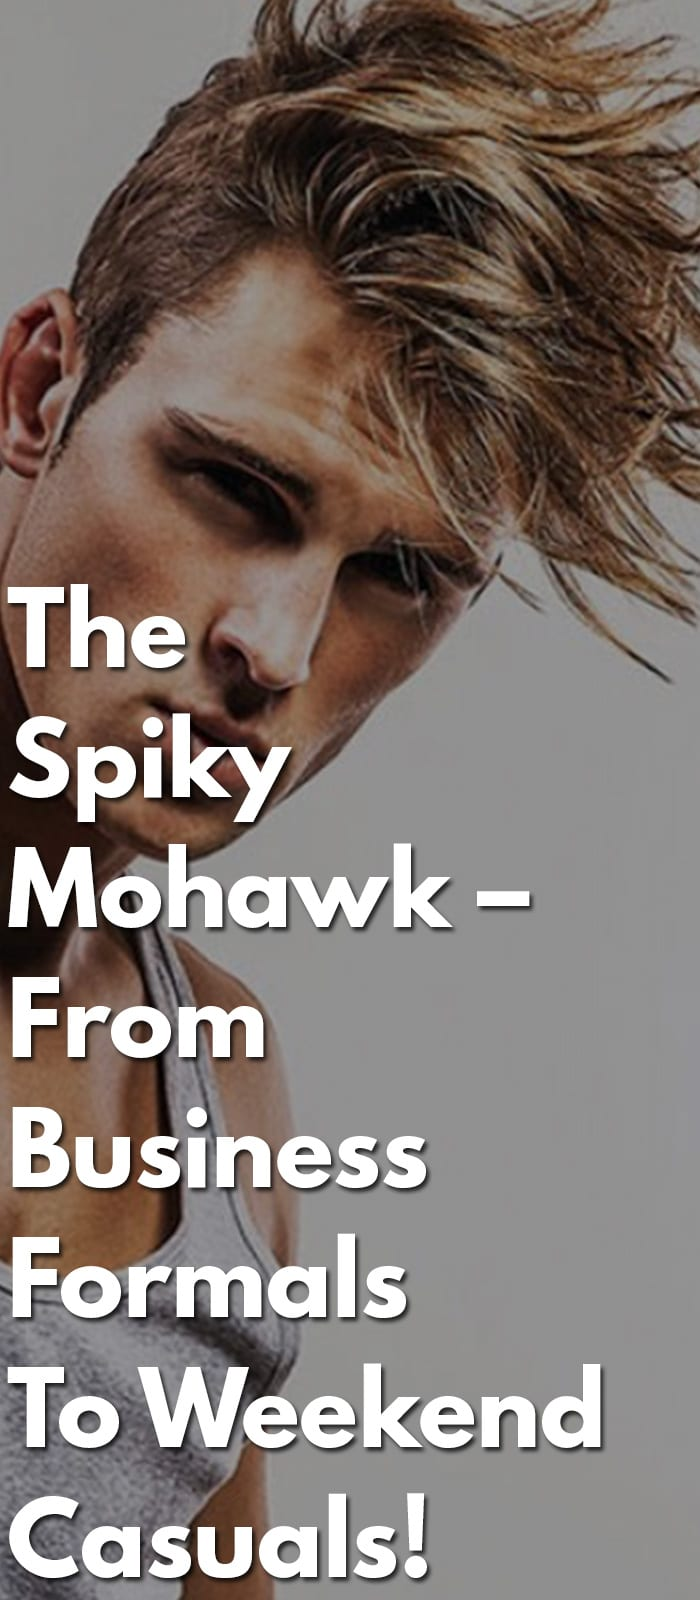 The-Spiky-Mohawk-–-From-Business-Formals-To-Weekend-Casuals!.